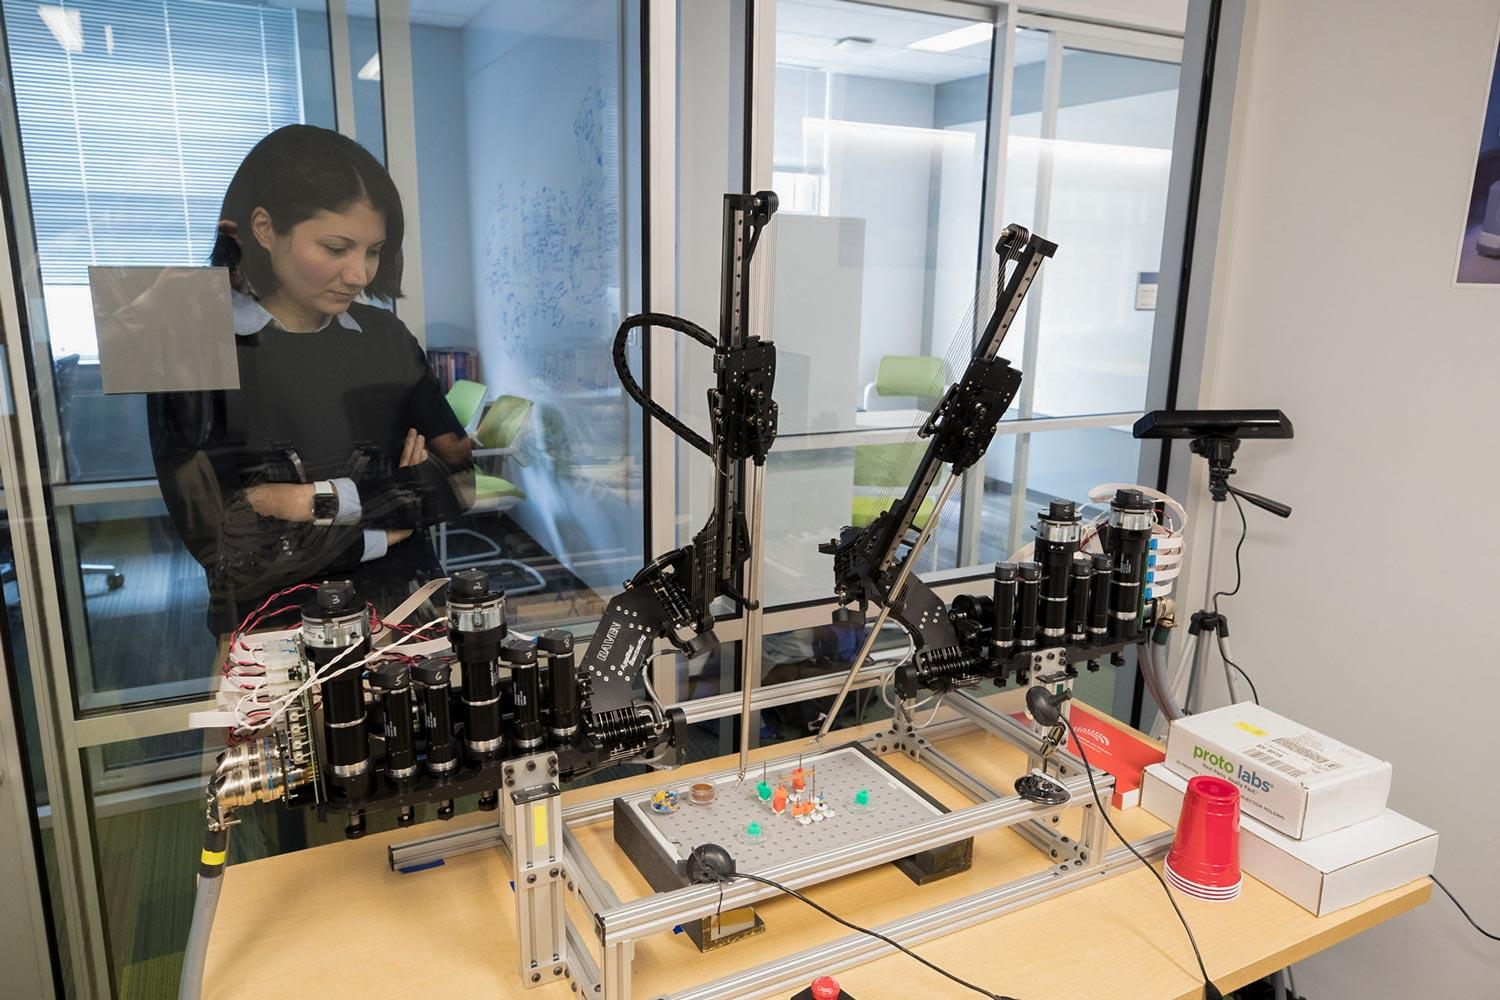 Homa Alemzadeh and colleagues are working to improve the safety of robot-assisted surgery systems and improve the training of the next generation of surgeons.